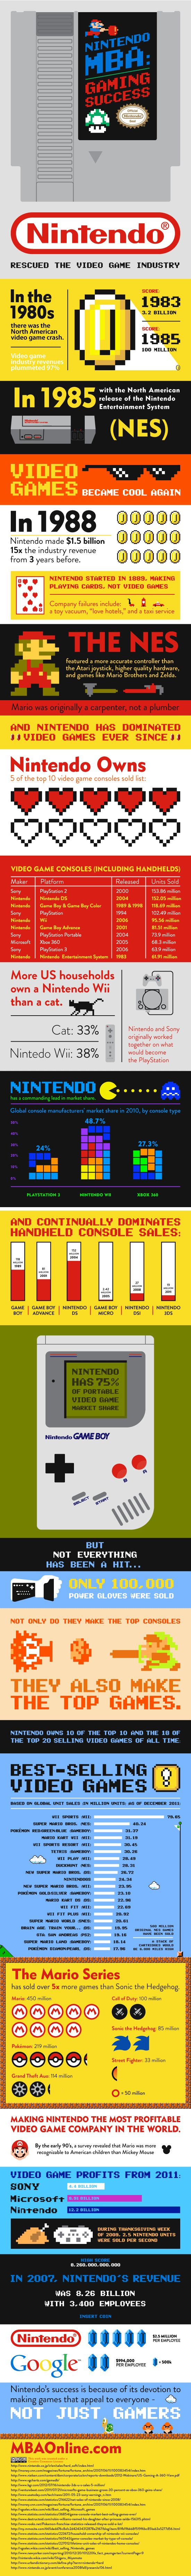 How Nintendo saved the video game industry several times. Also, biggest Nintendo infographic ever.